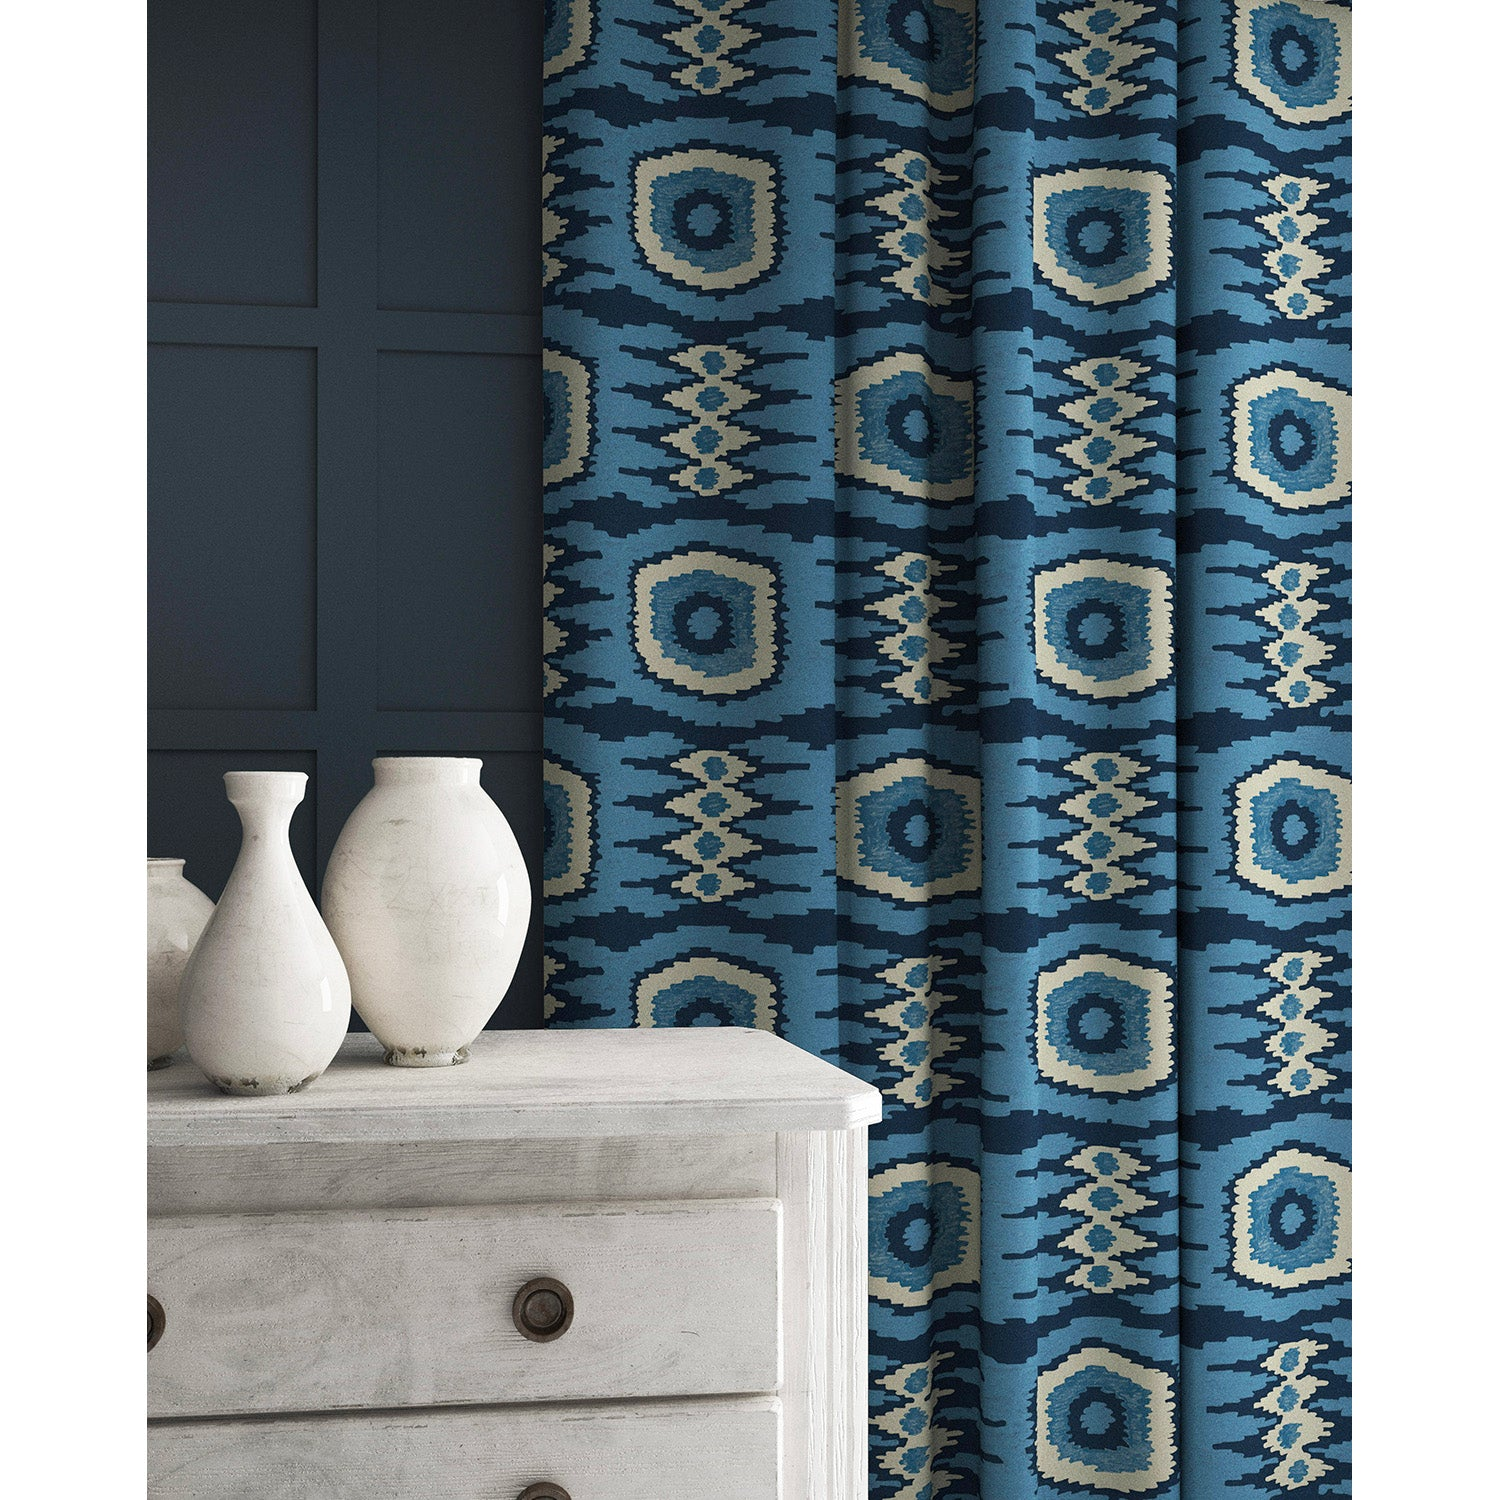 Curtains in a blue velvet fabric with stain resistant finish and abstract print